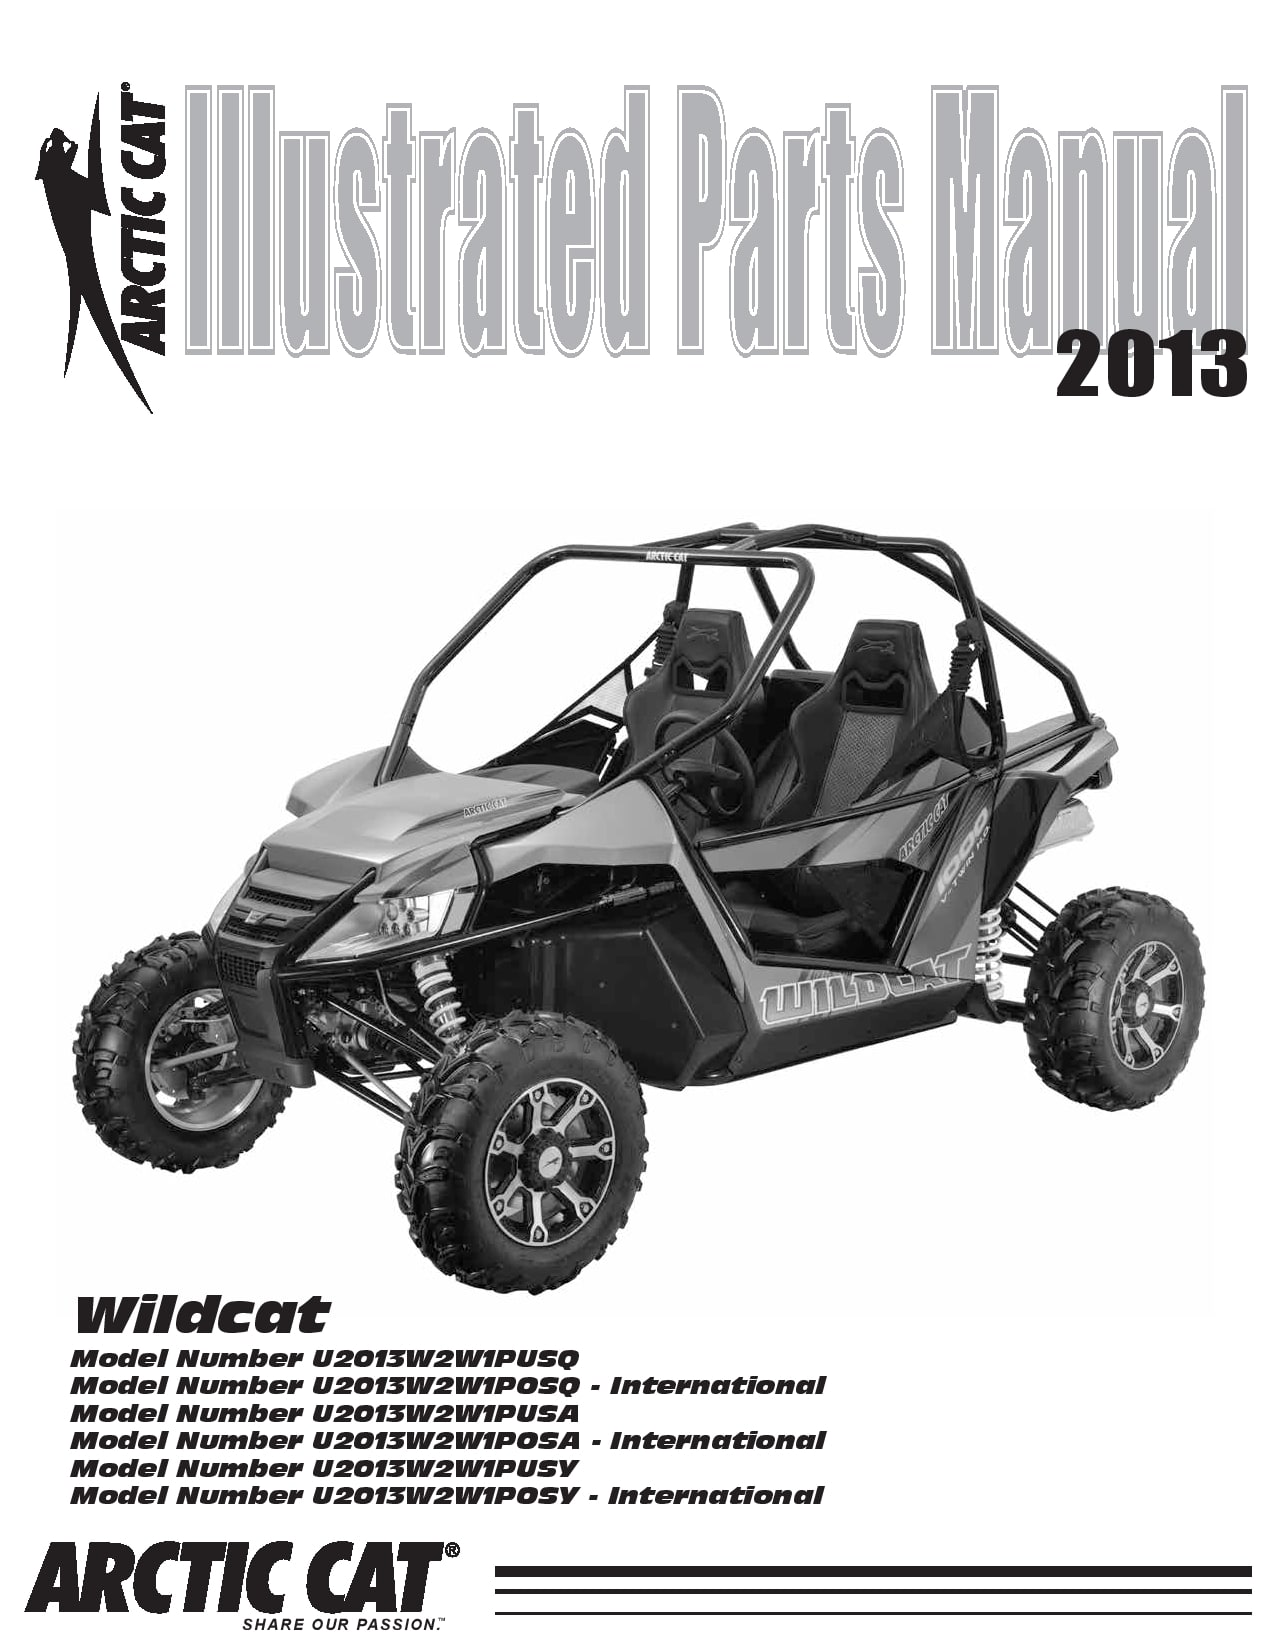 ARCTIC CAT 2013 Wildcat NH part manual PDF Download